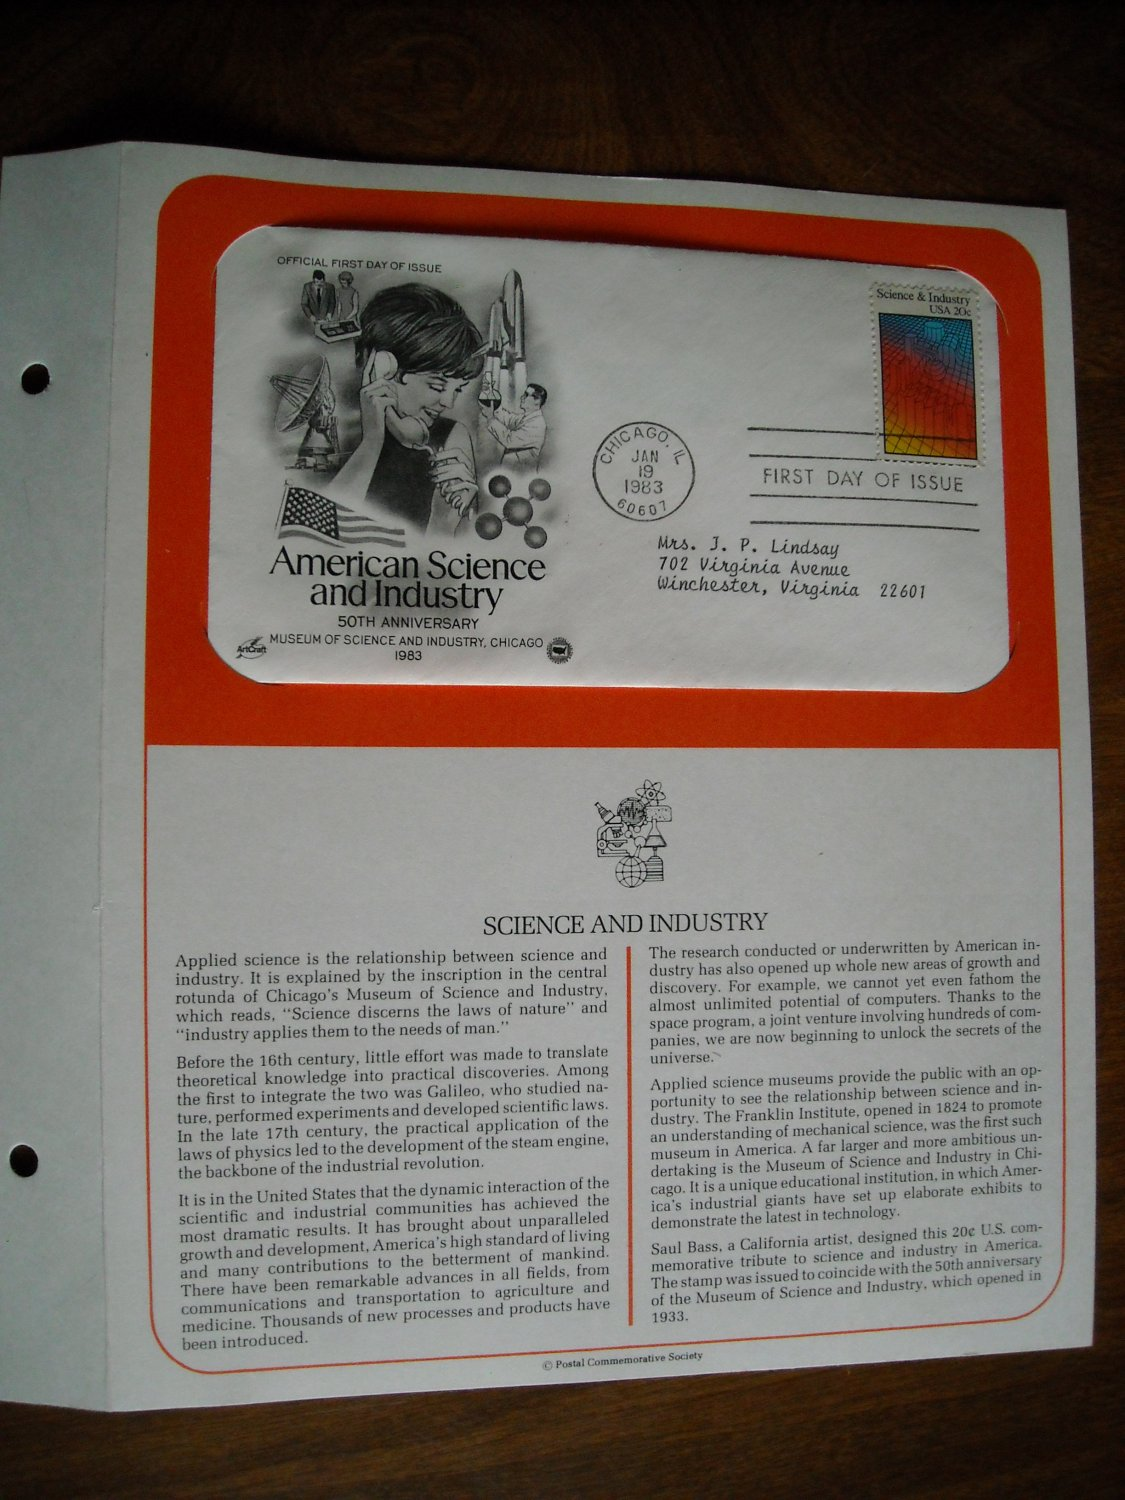 American Science and Industry 1983 Postal Commemorative Society First Day Cover Sheet